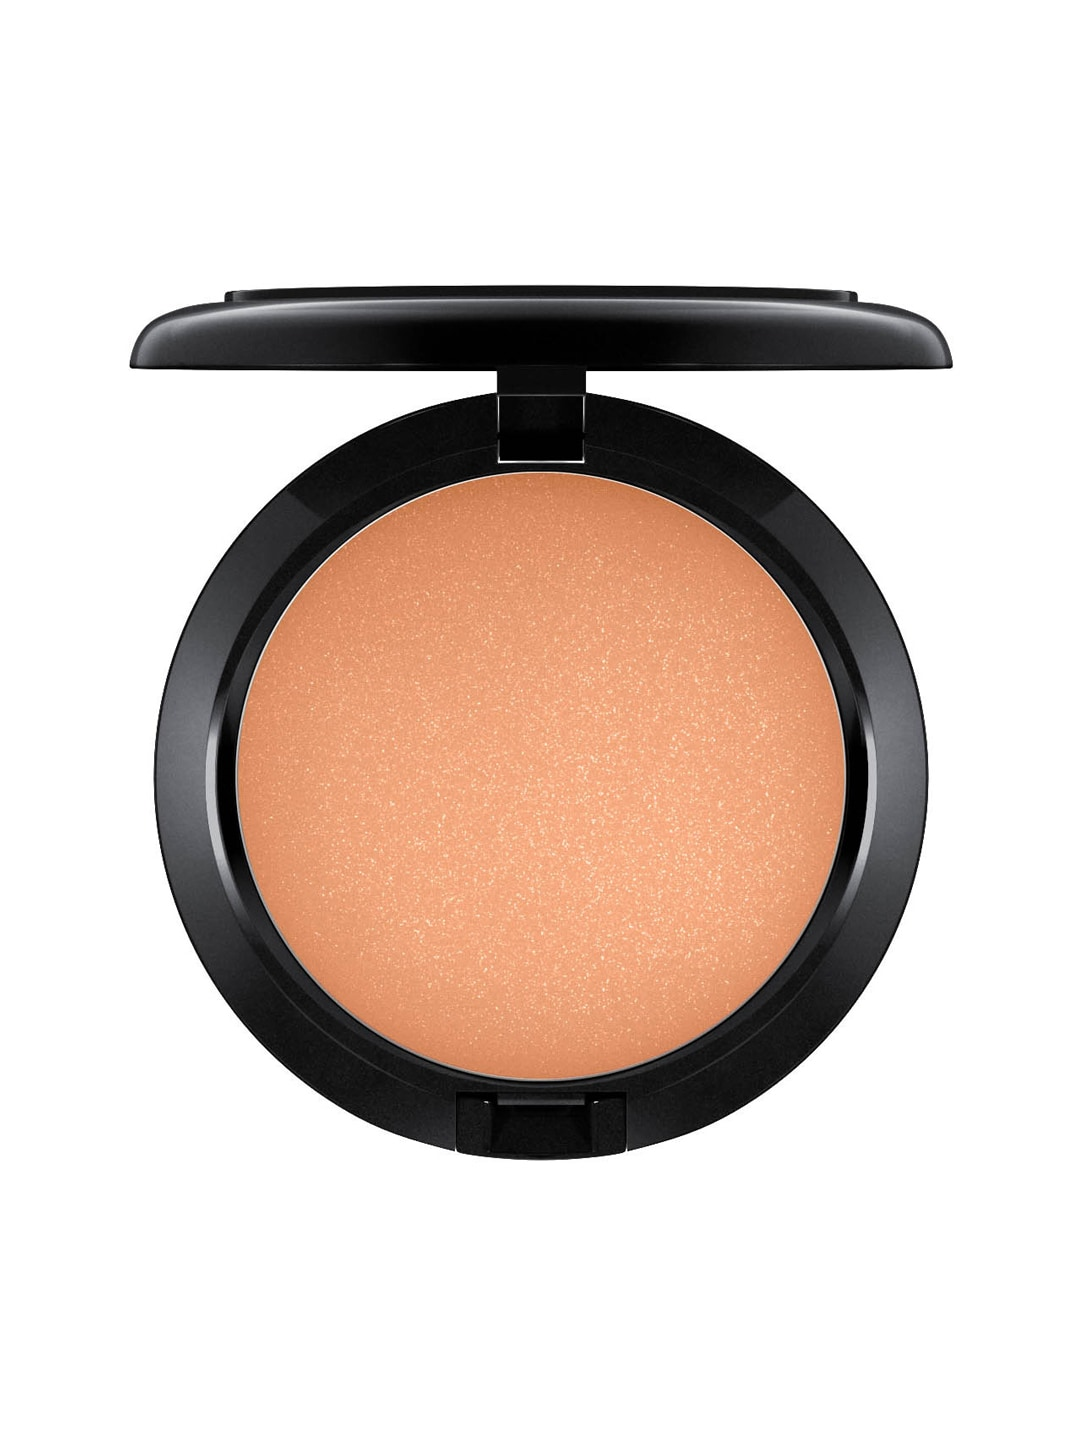 M.A.C Refined Golden Fruity Juicy  Bronzing Powder image